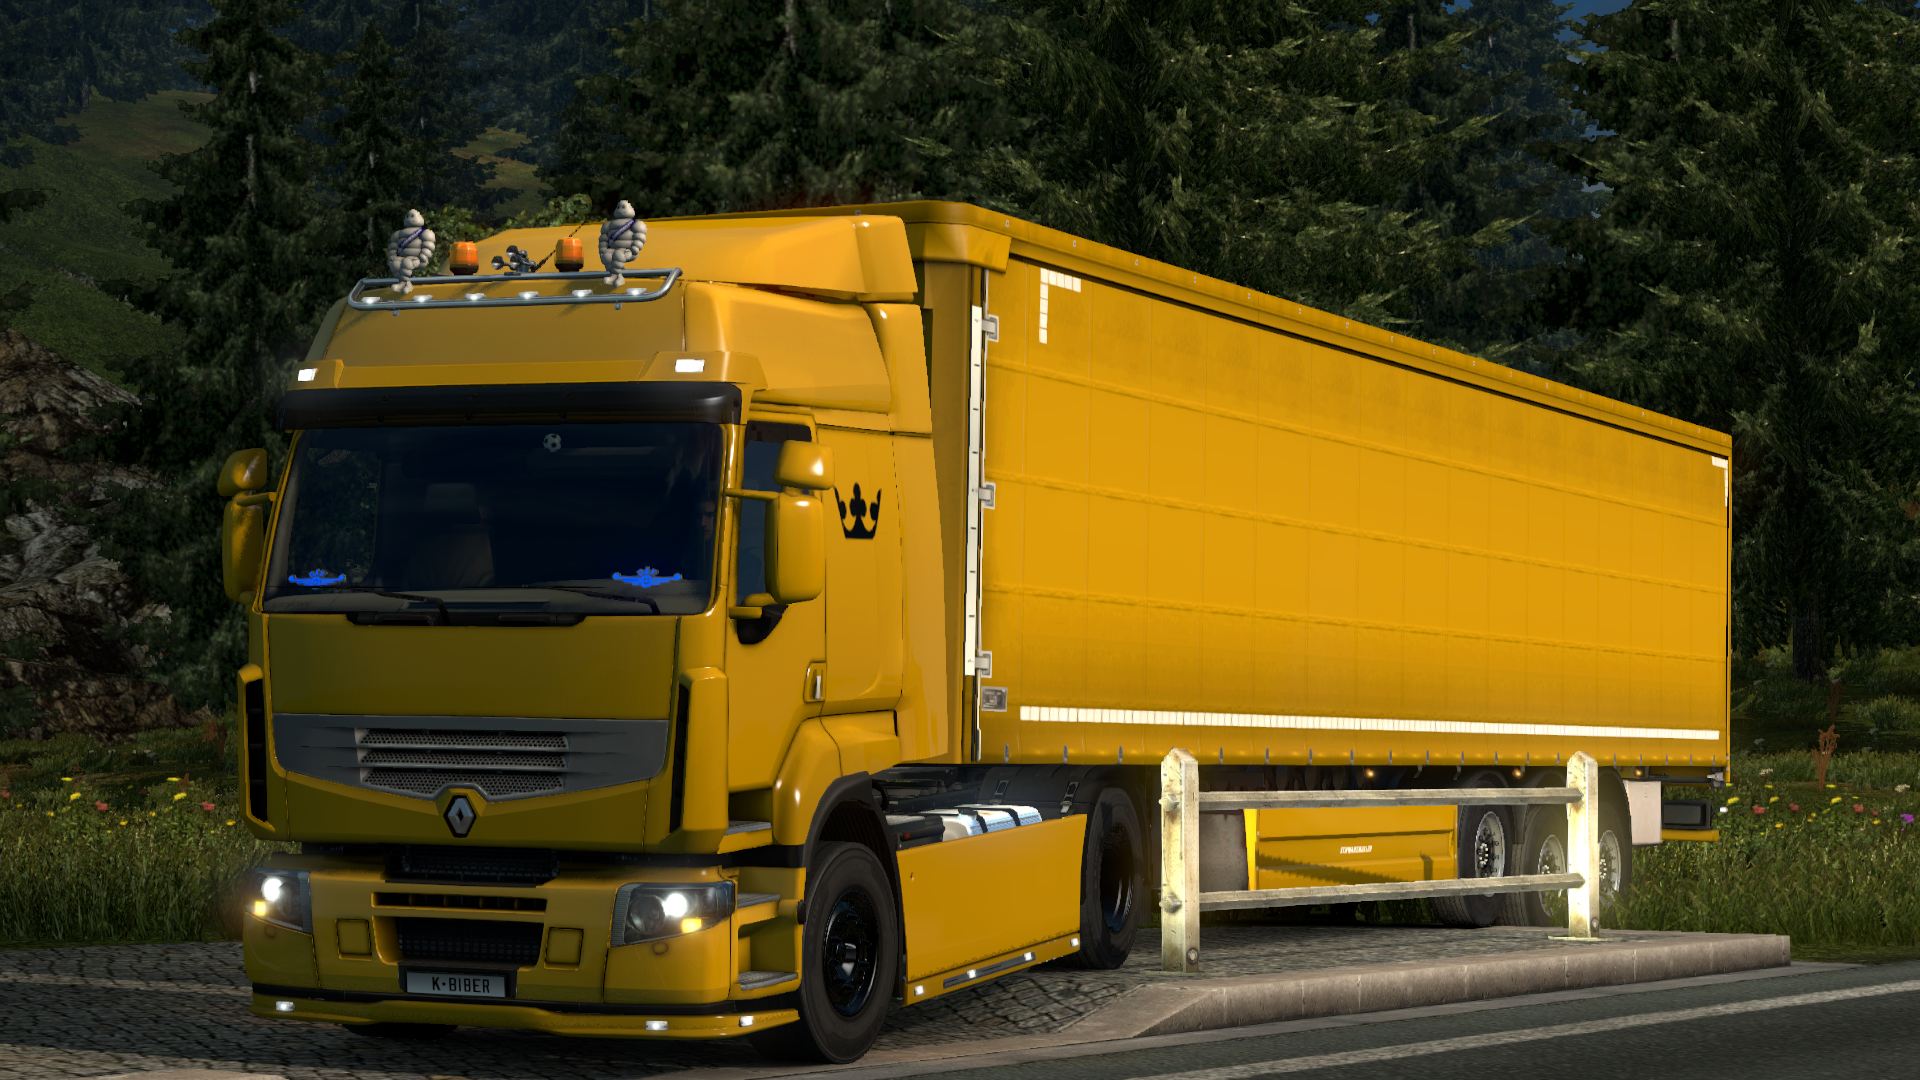 ets2_20180815_234146_00.png